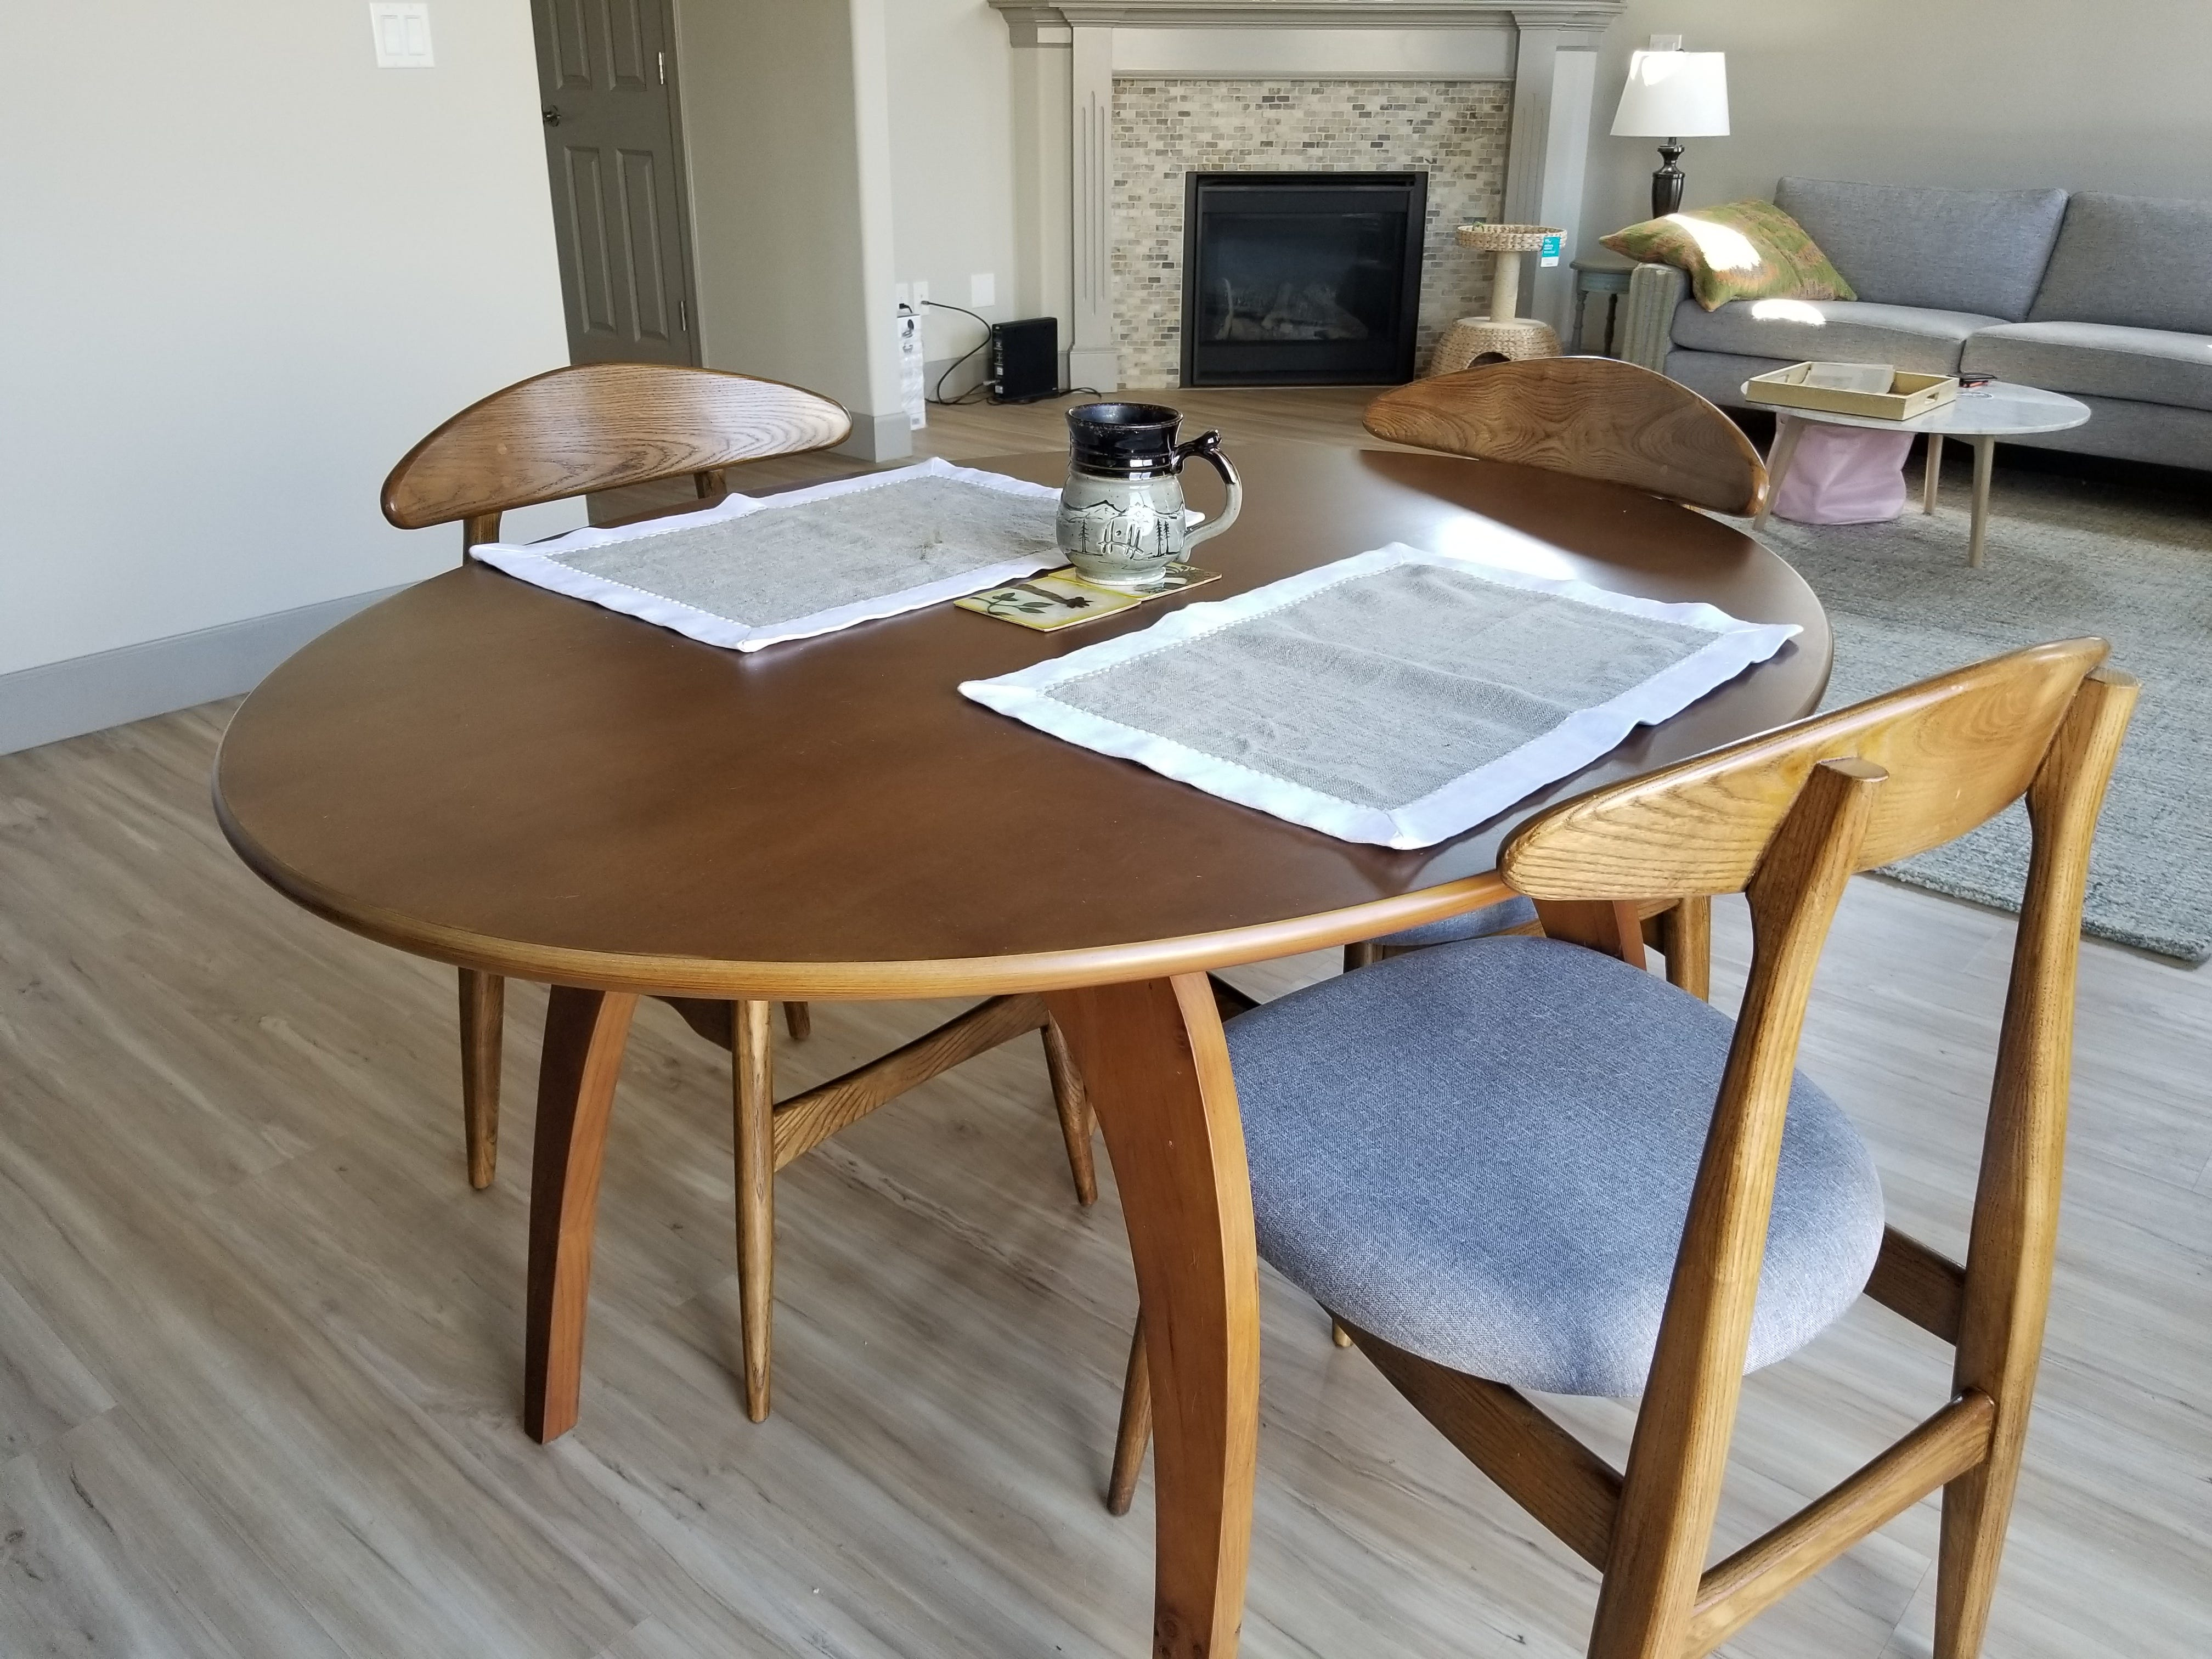 feng shui case study home office. Feng Shui Case Study Home Office